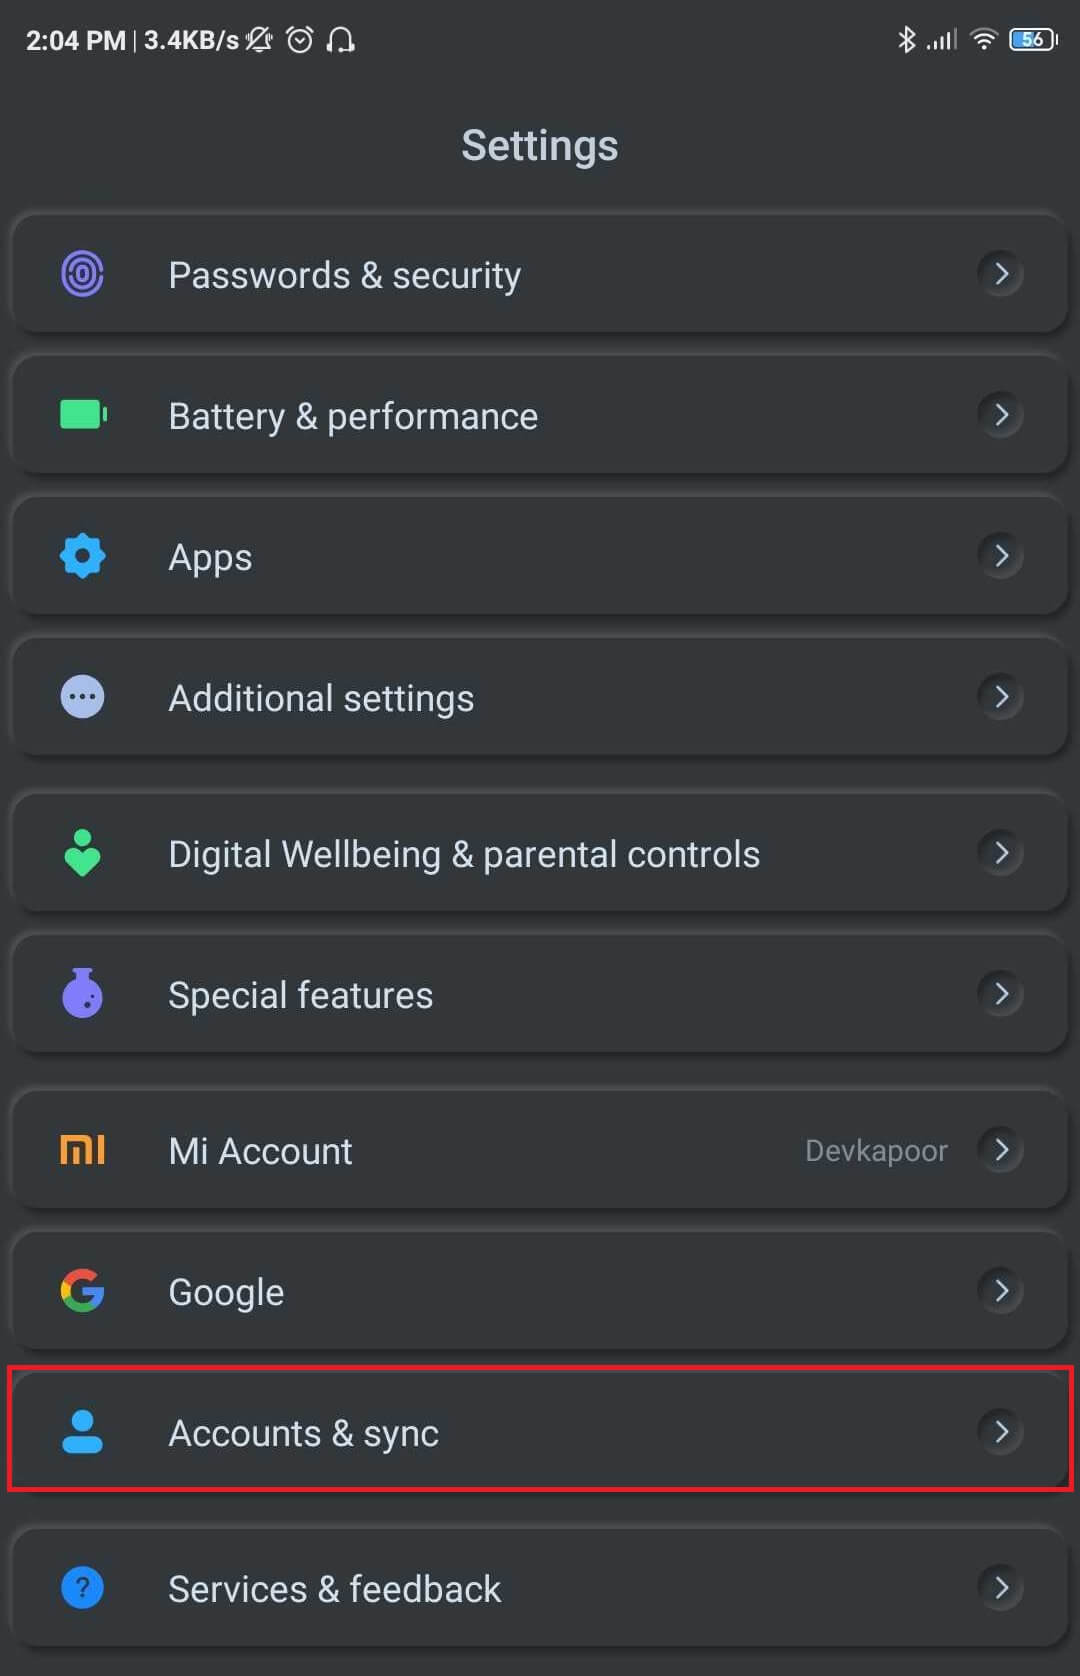 open settings then Tap on Accounts & sync.